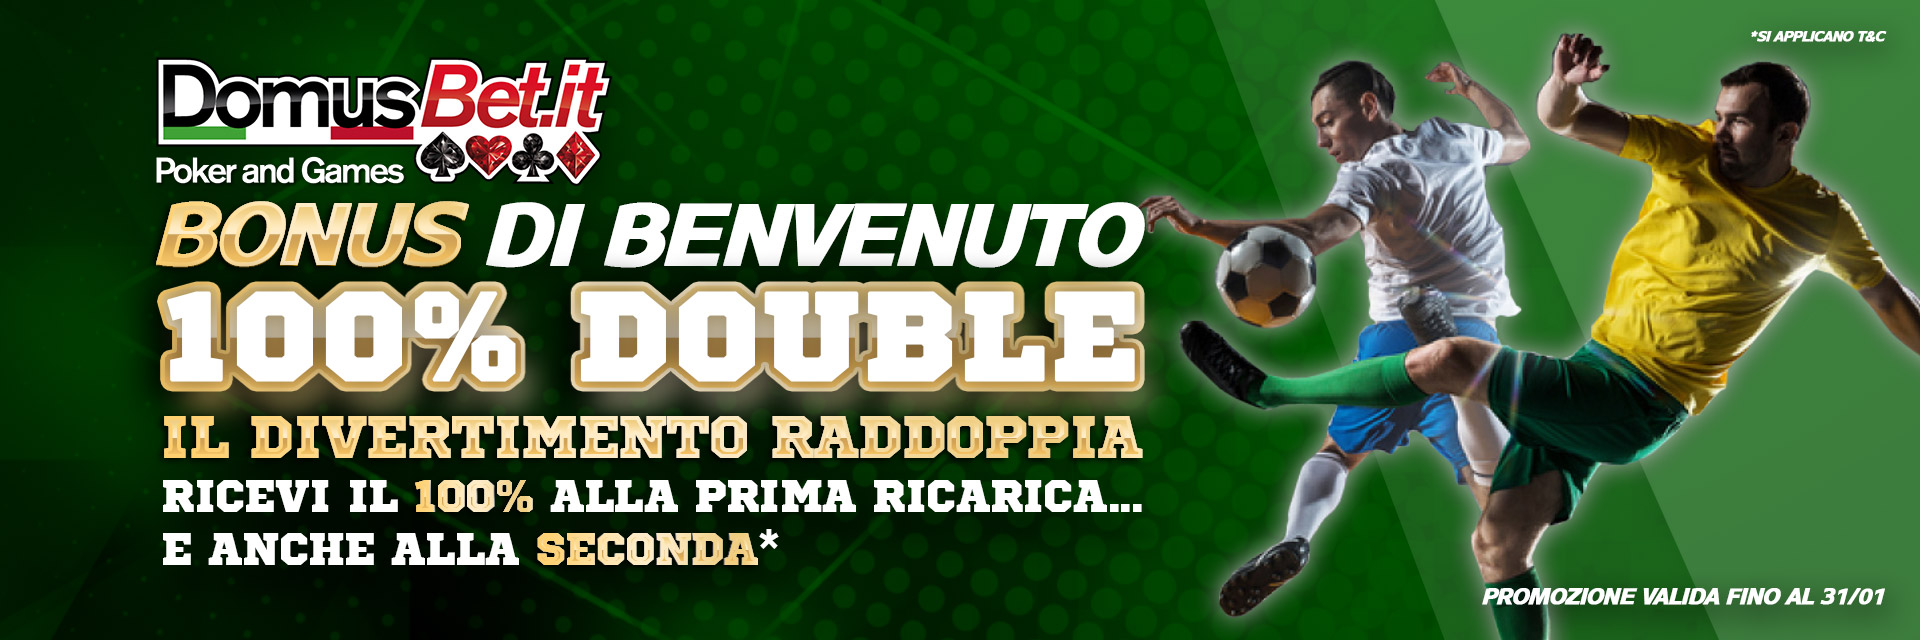 Domusbet Double